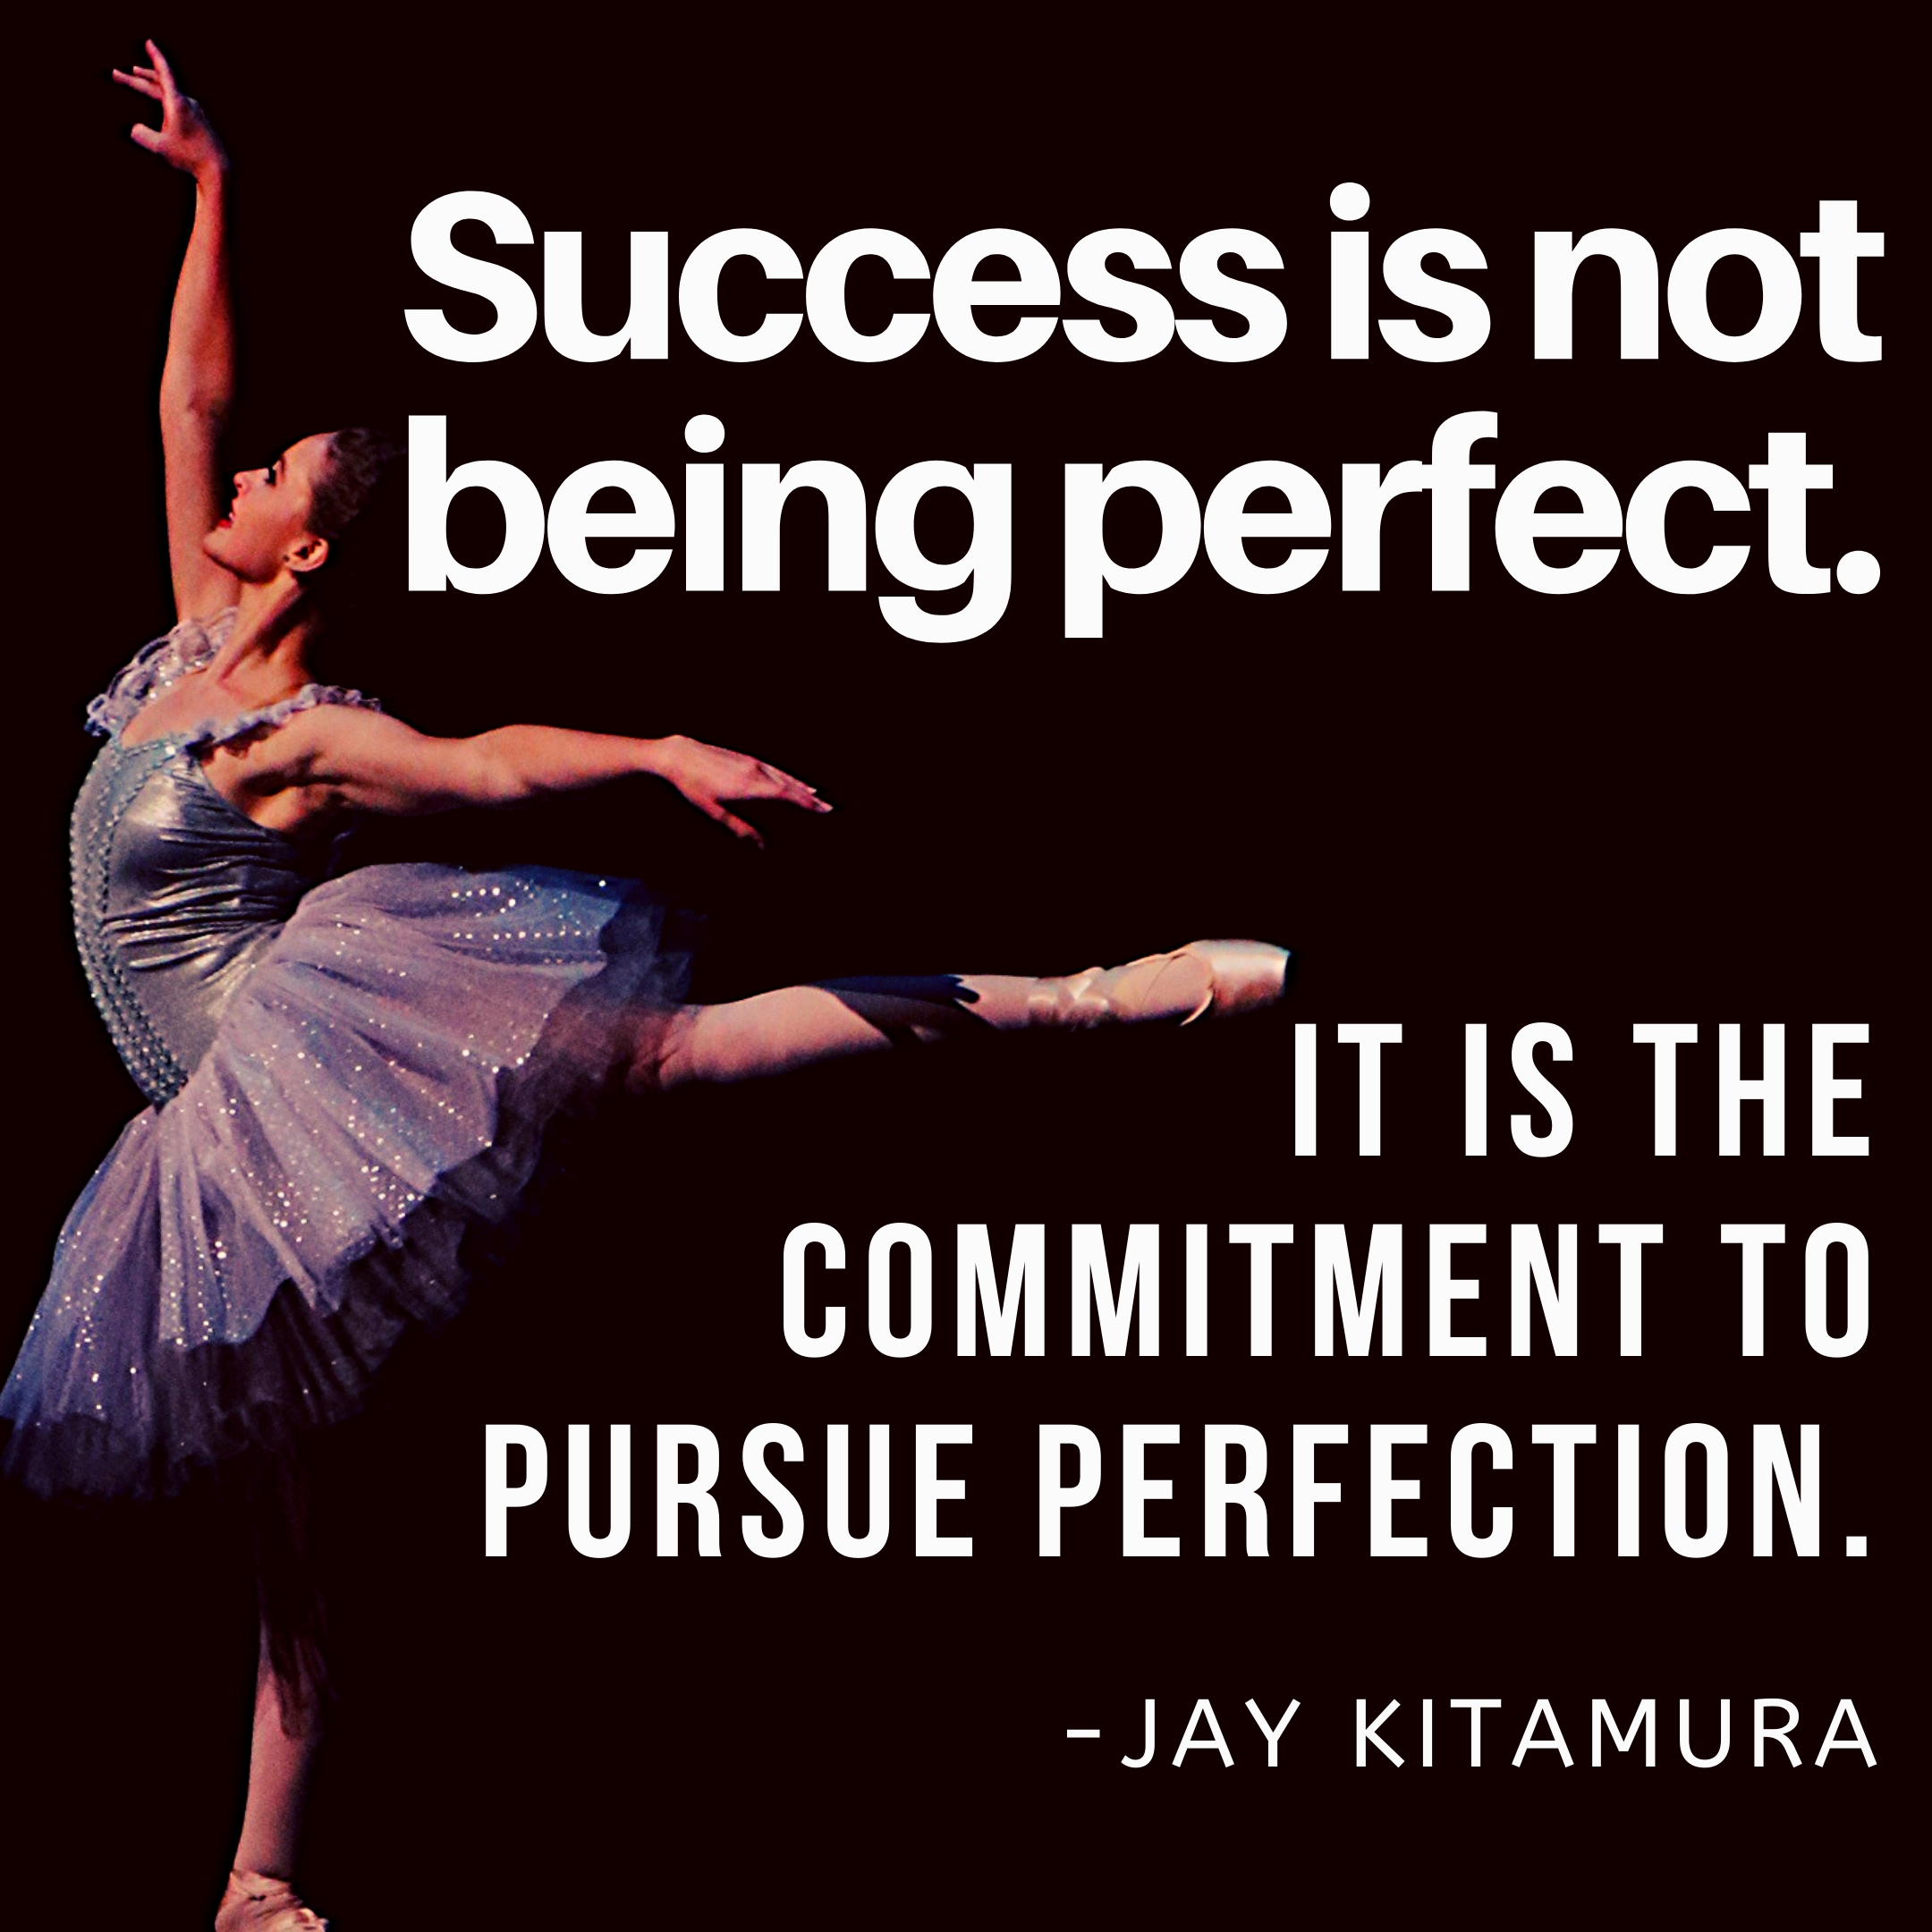 [Image] You don't have to be perfect.